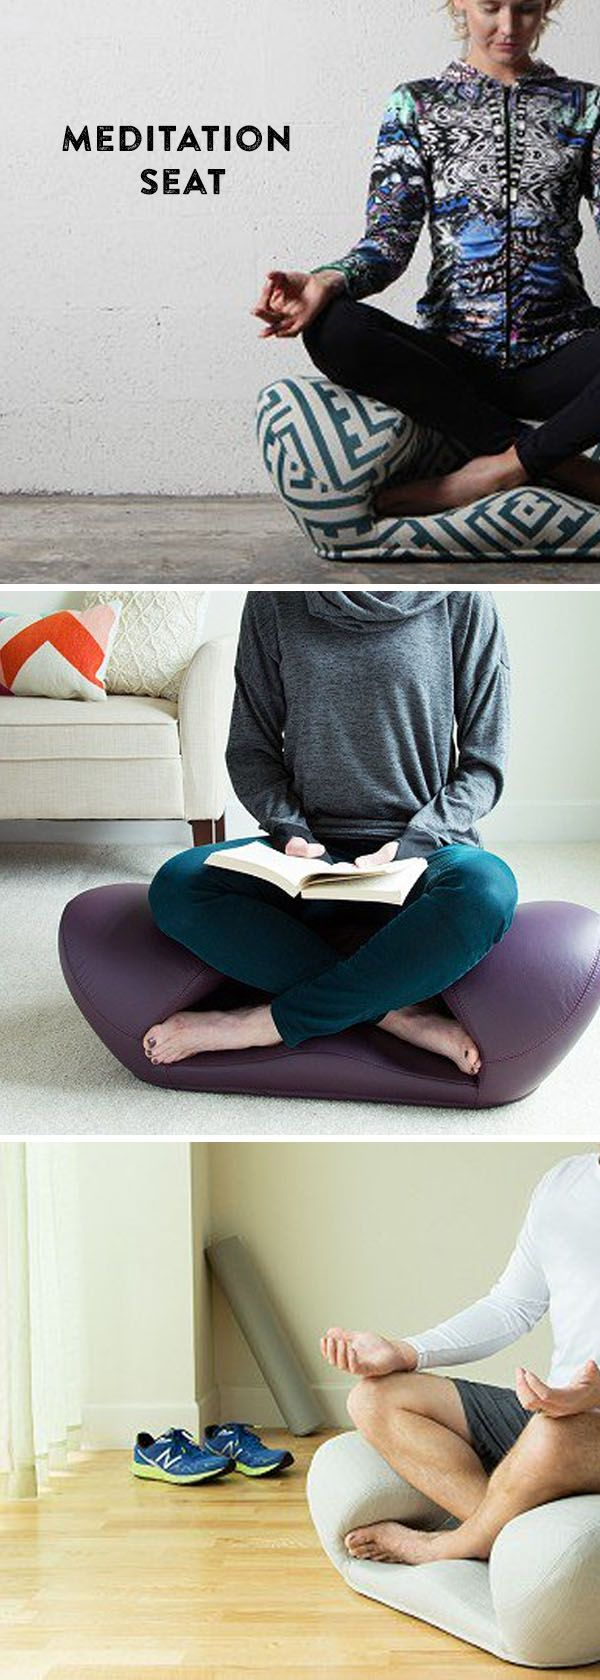 Meditate, relax, or work in comfort. The unusual lotus-inspired design supports you in all the right places—to sit up straighter and maintain better posture.